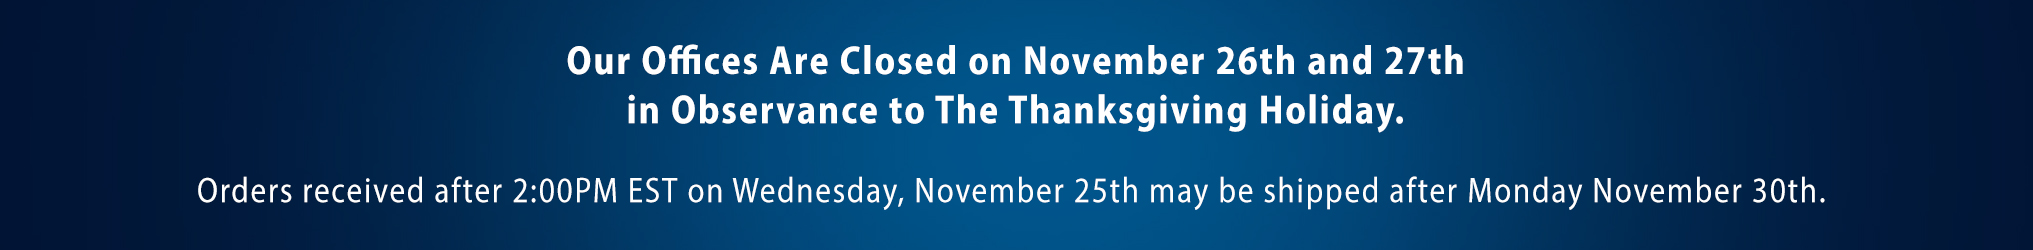 Our offices are currently closed.